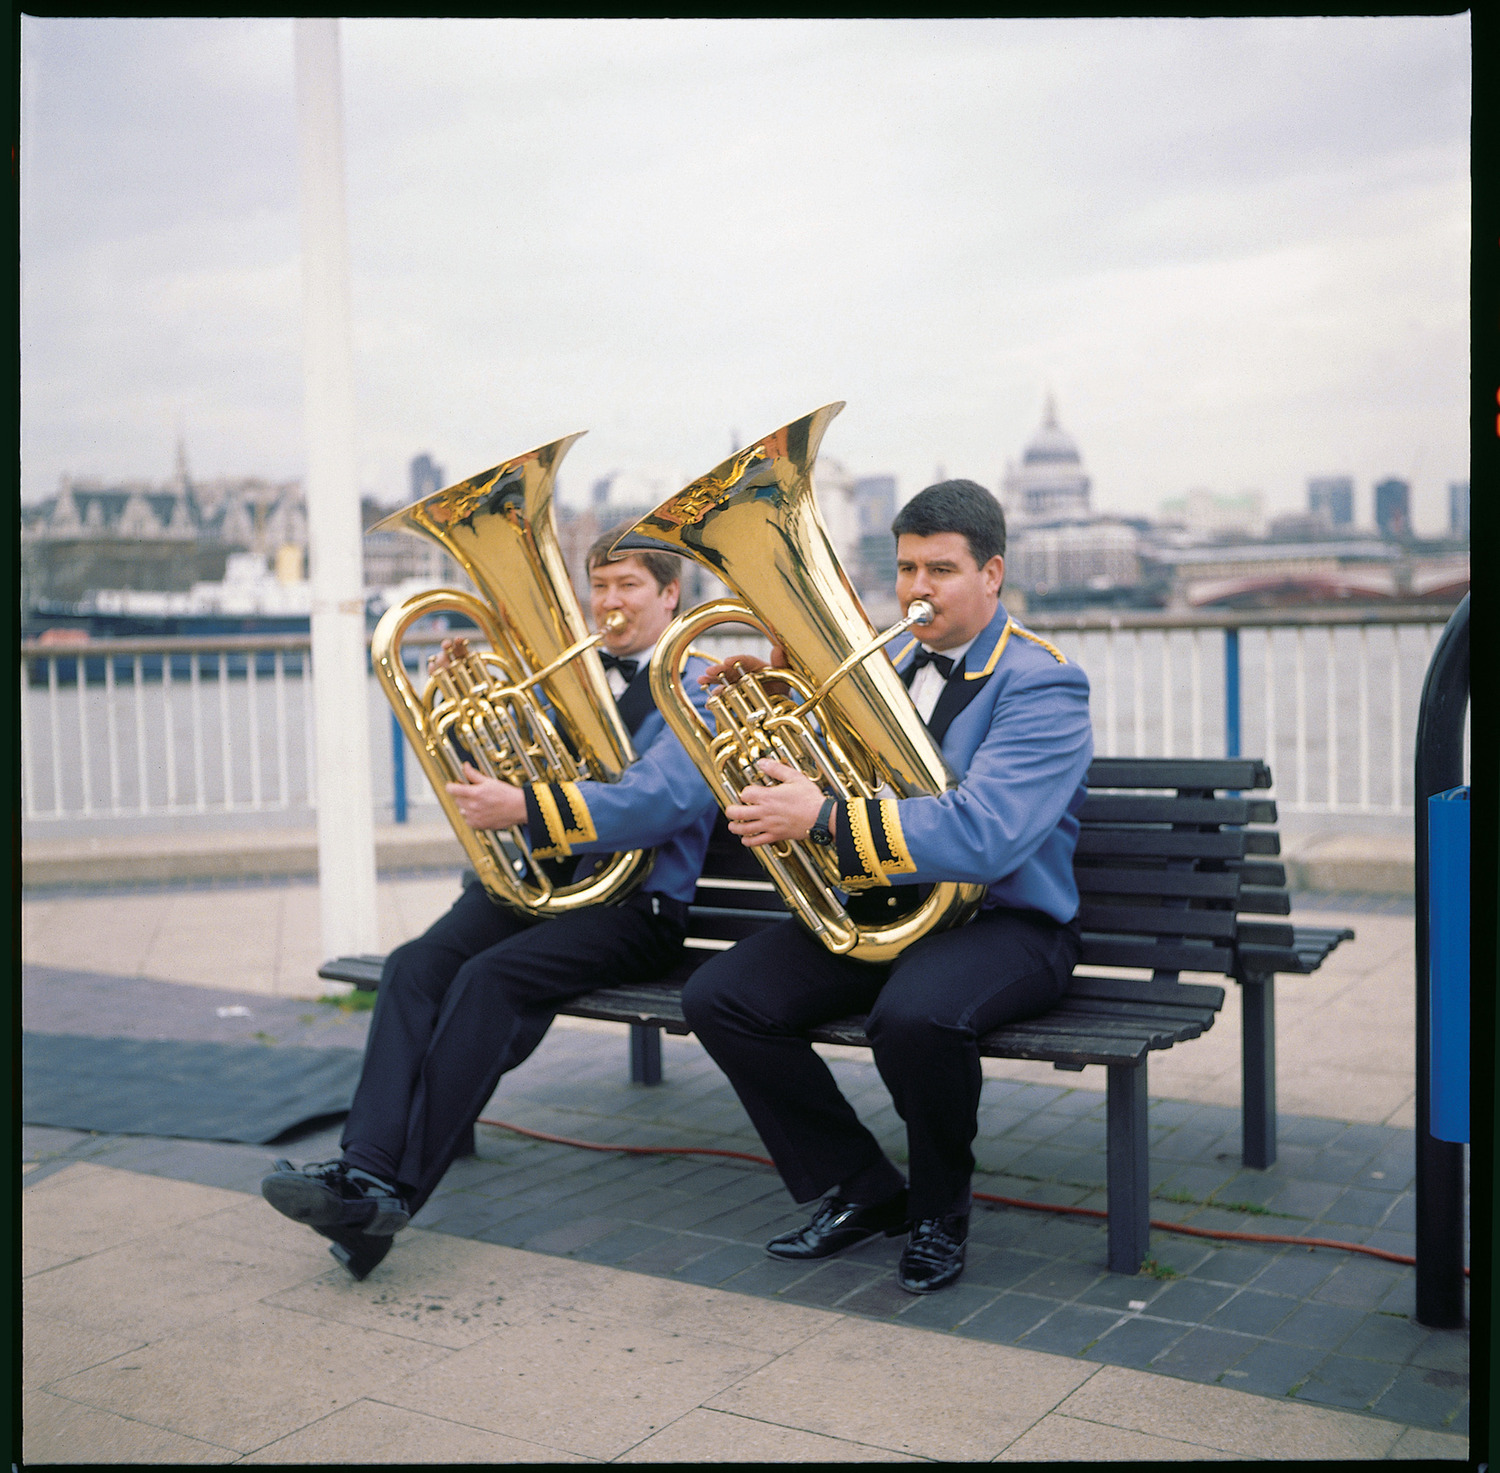 Acid Brass, 1997. Band members warming up on the Southbank, London, before appearing on 'The Richard and Judy Show.'